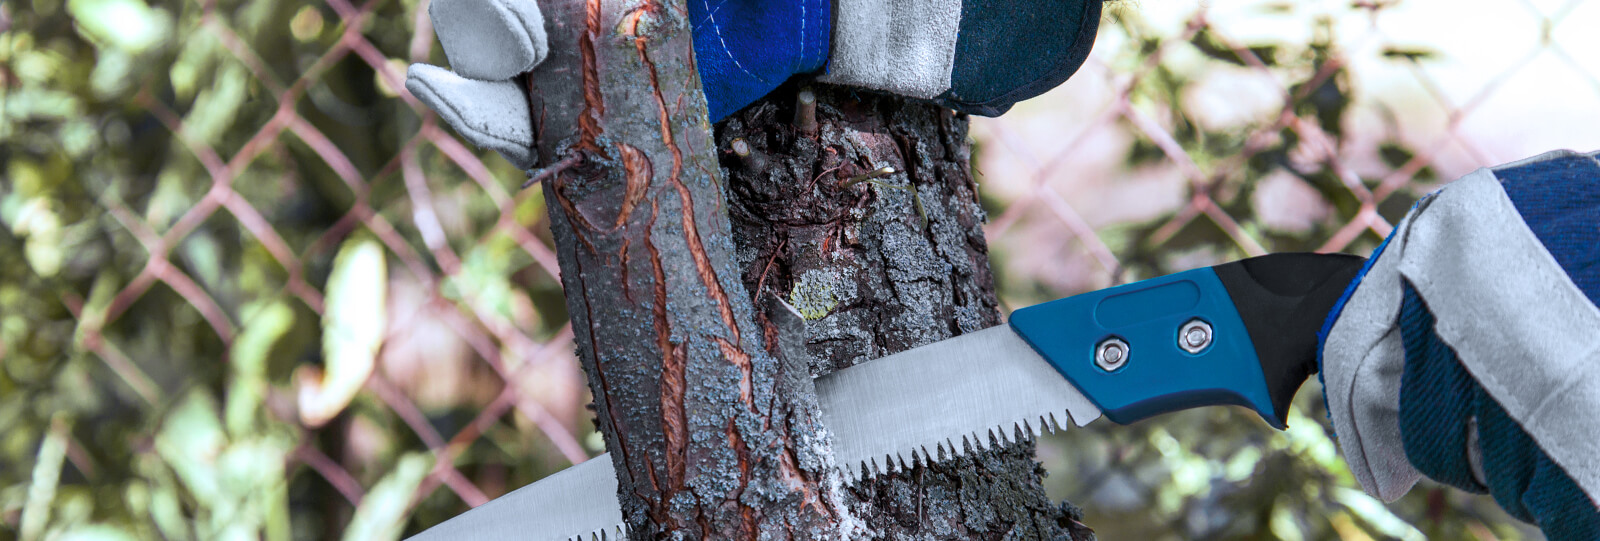 PFAS-february-pruning-gloved-hands-saw-tree